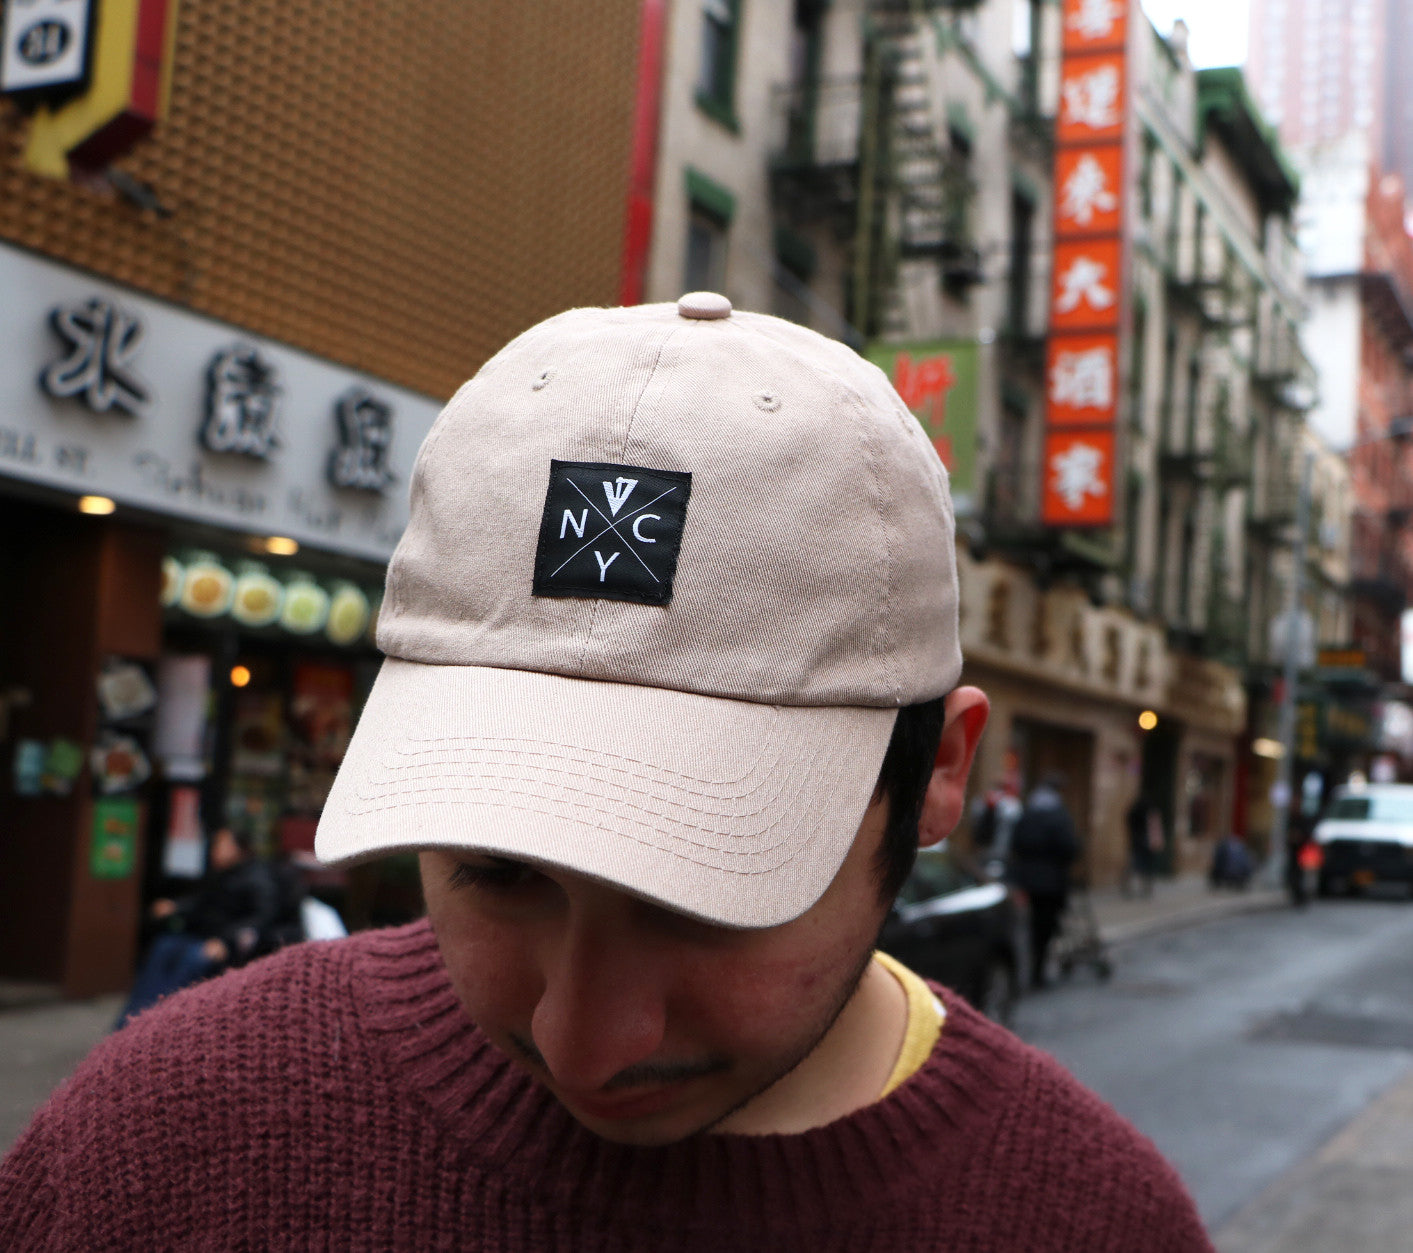 NYC Hardcore Khaki Cap in Chinatown